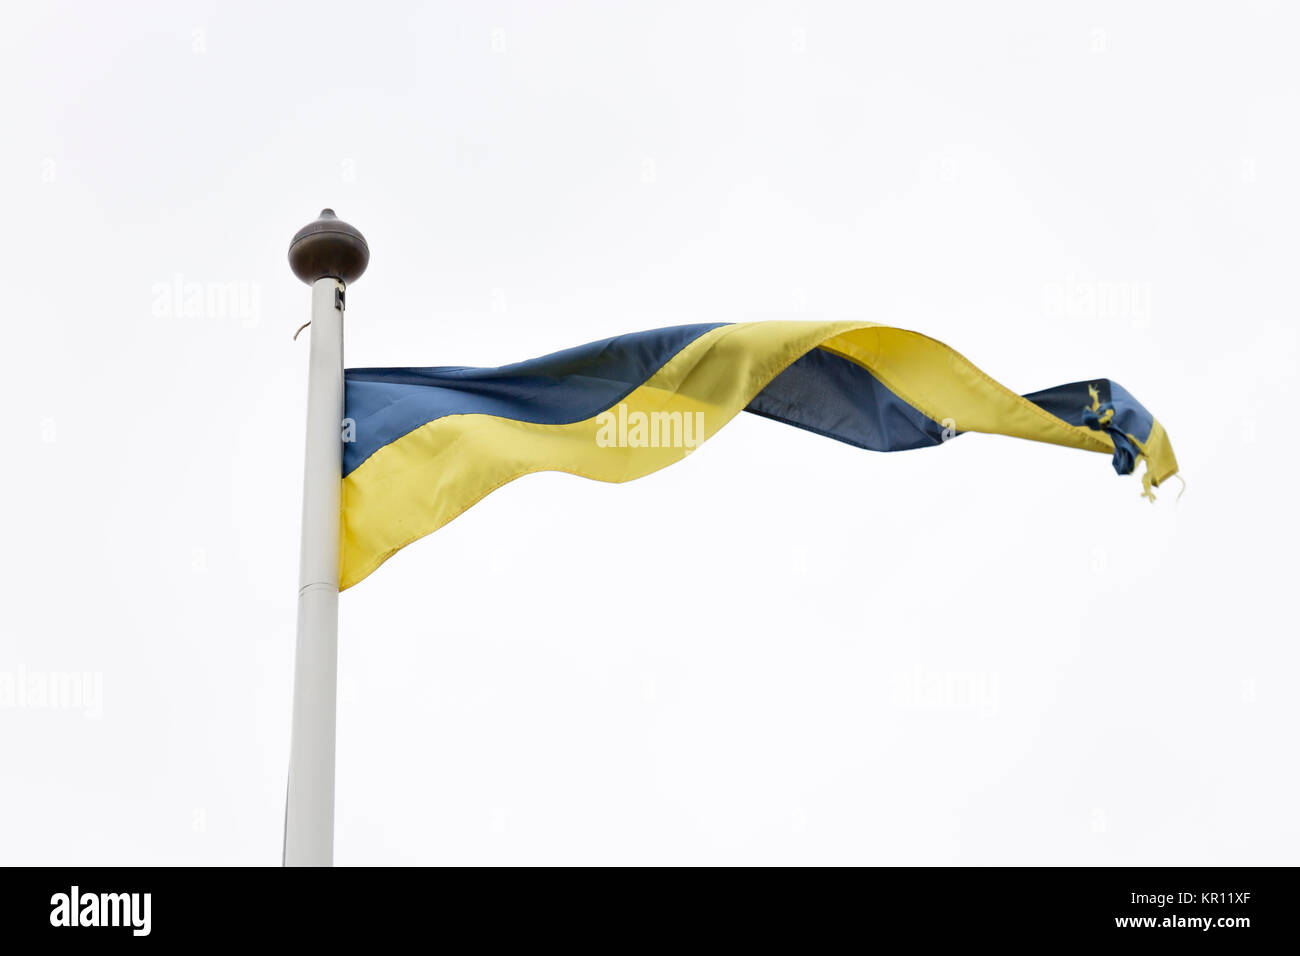 Swedish Yellow and Blue Pennant - Stock Image